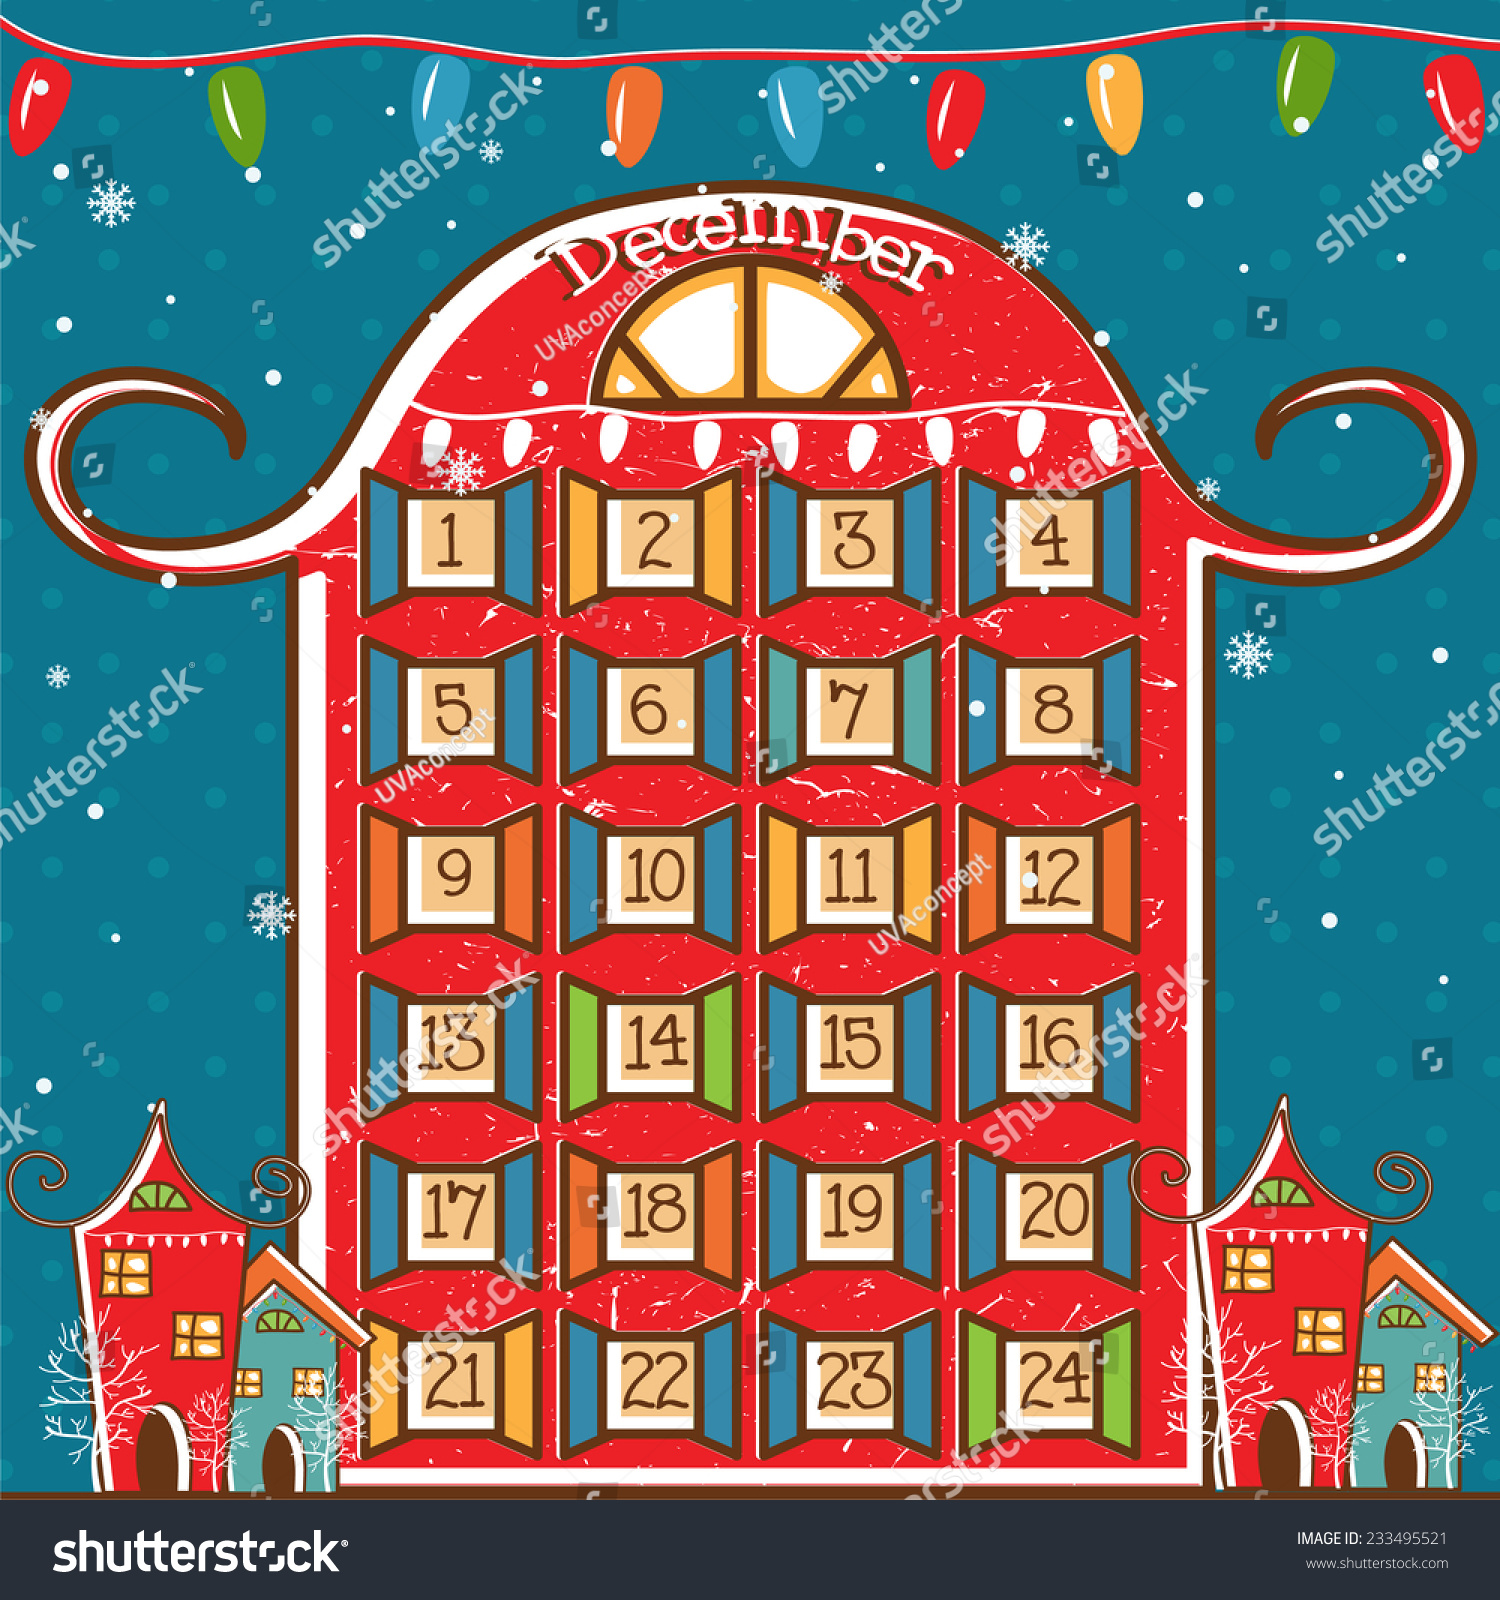 Calendar Illustration Vector : Illustration christmas calendar vector stock